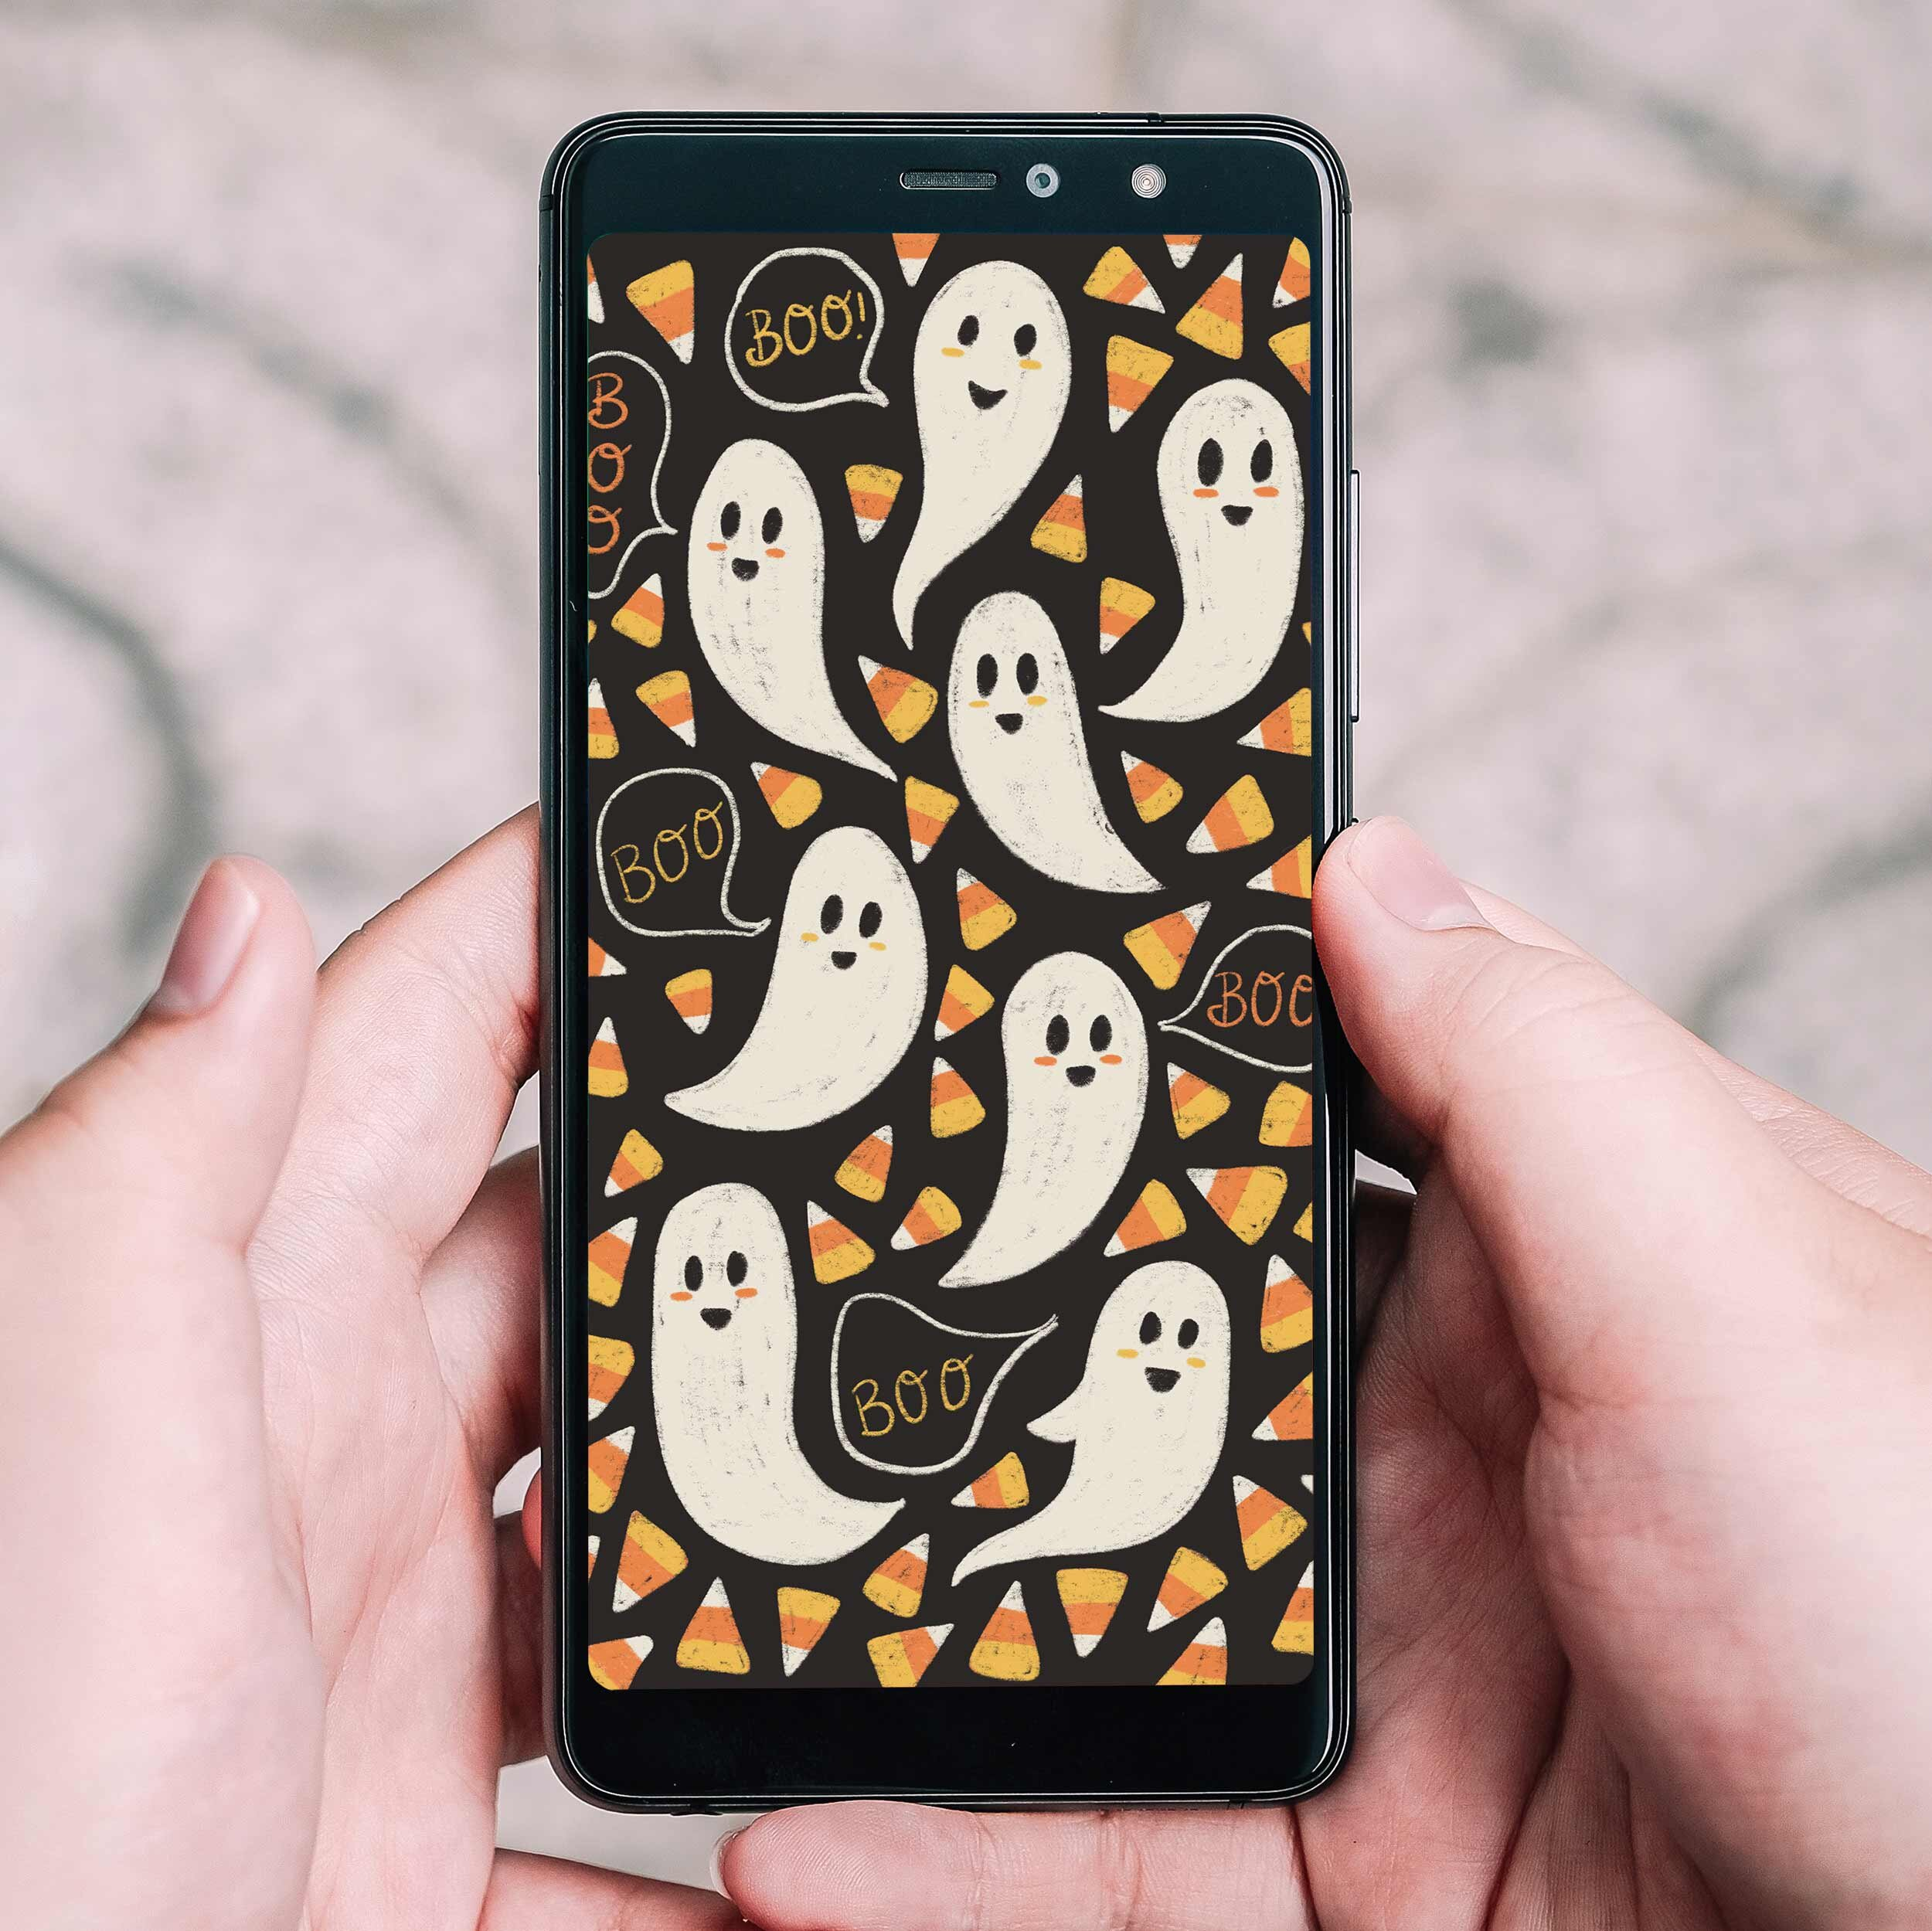 Friendly ghost hand drawn phone wallpaper with lots of candy corn to use as your phones backdrop this Halloween season.